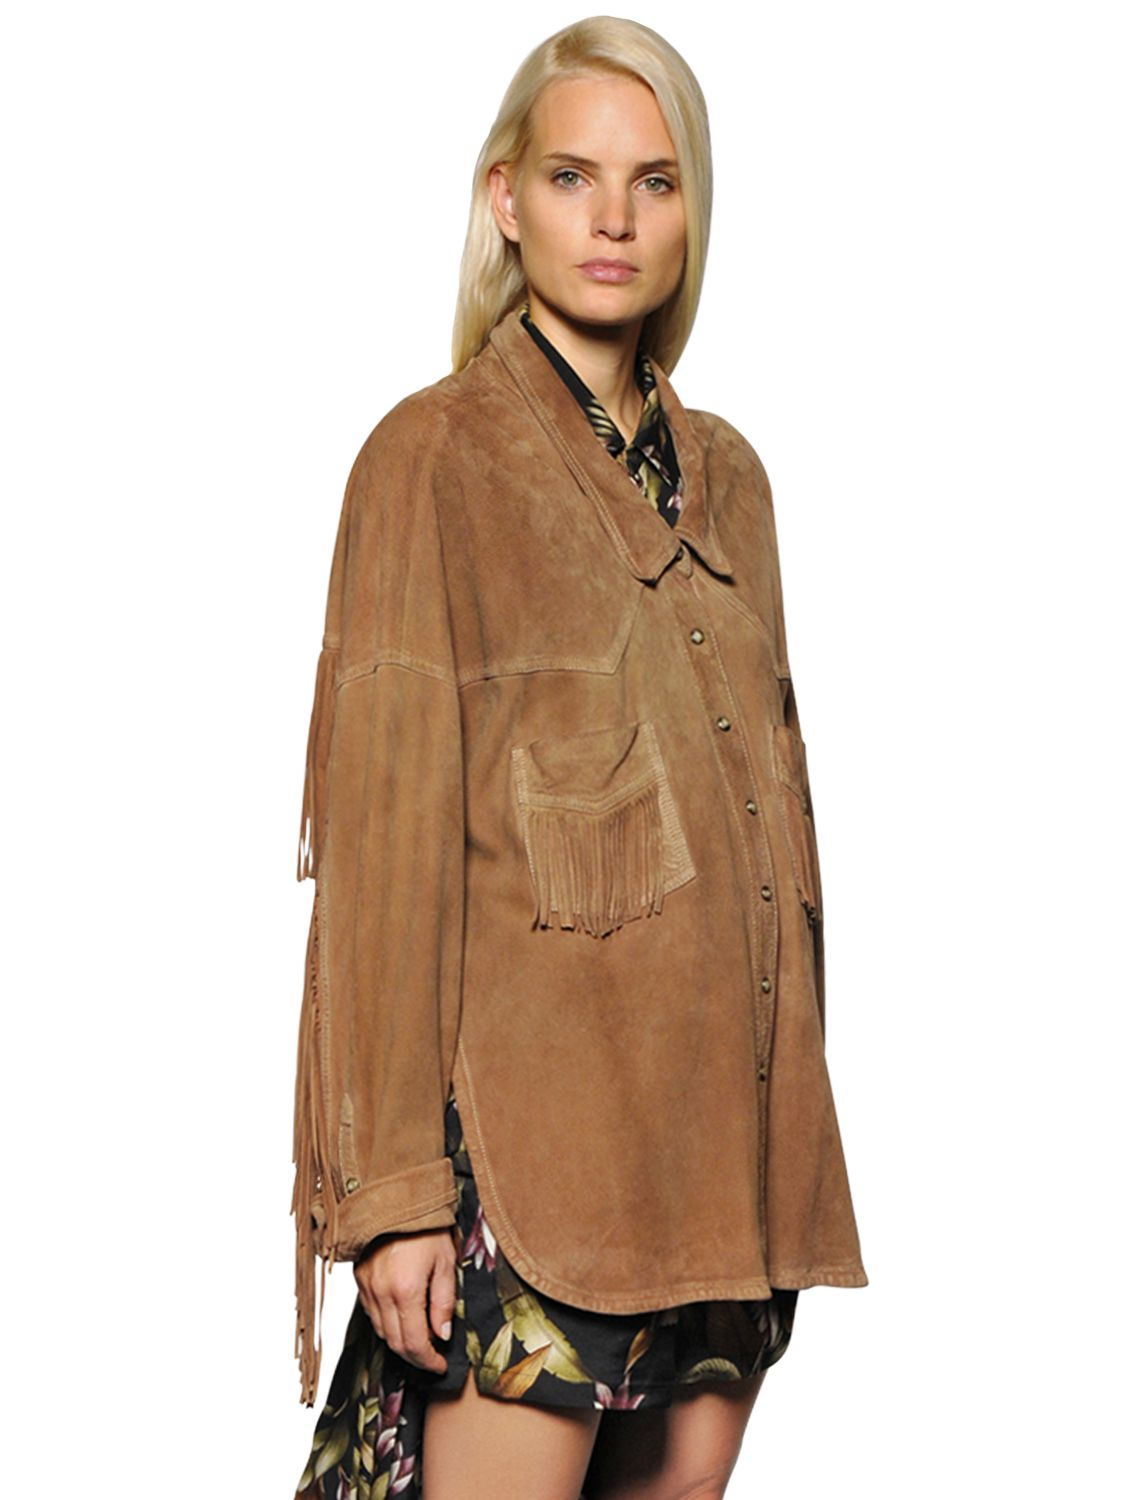 Nicekicks For Sale Faith Connexion fringe detail suede jacket Buy Cheap 100% Guaranteed D9n8a